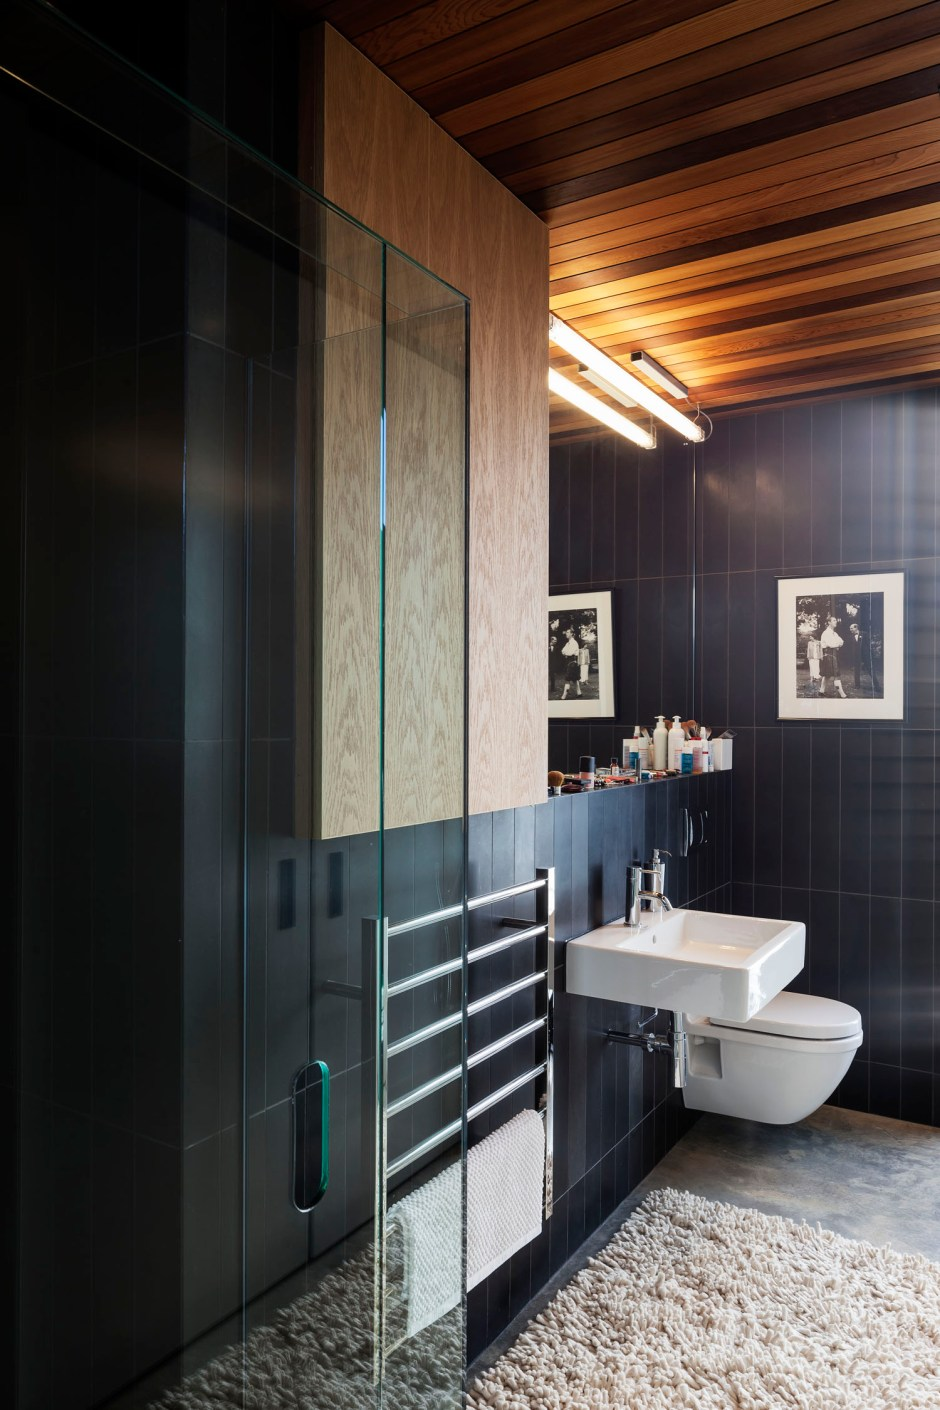 Gerrad Hall townhouse oiled ceiling and honed basalt create texture for en-suite